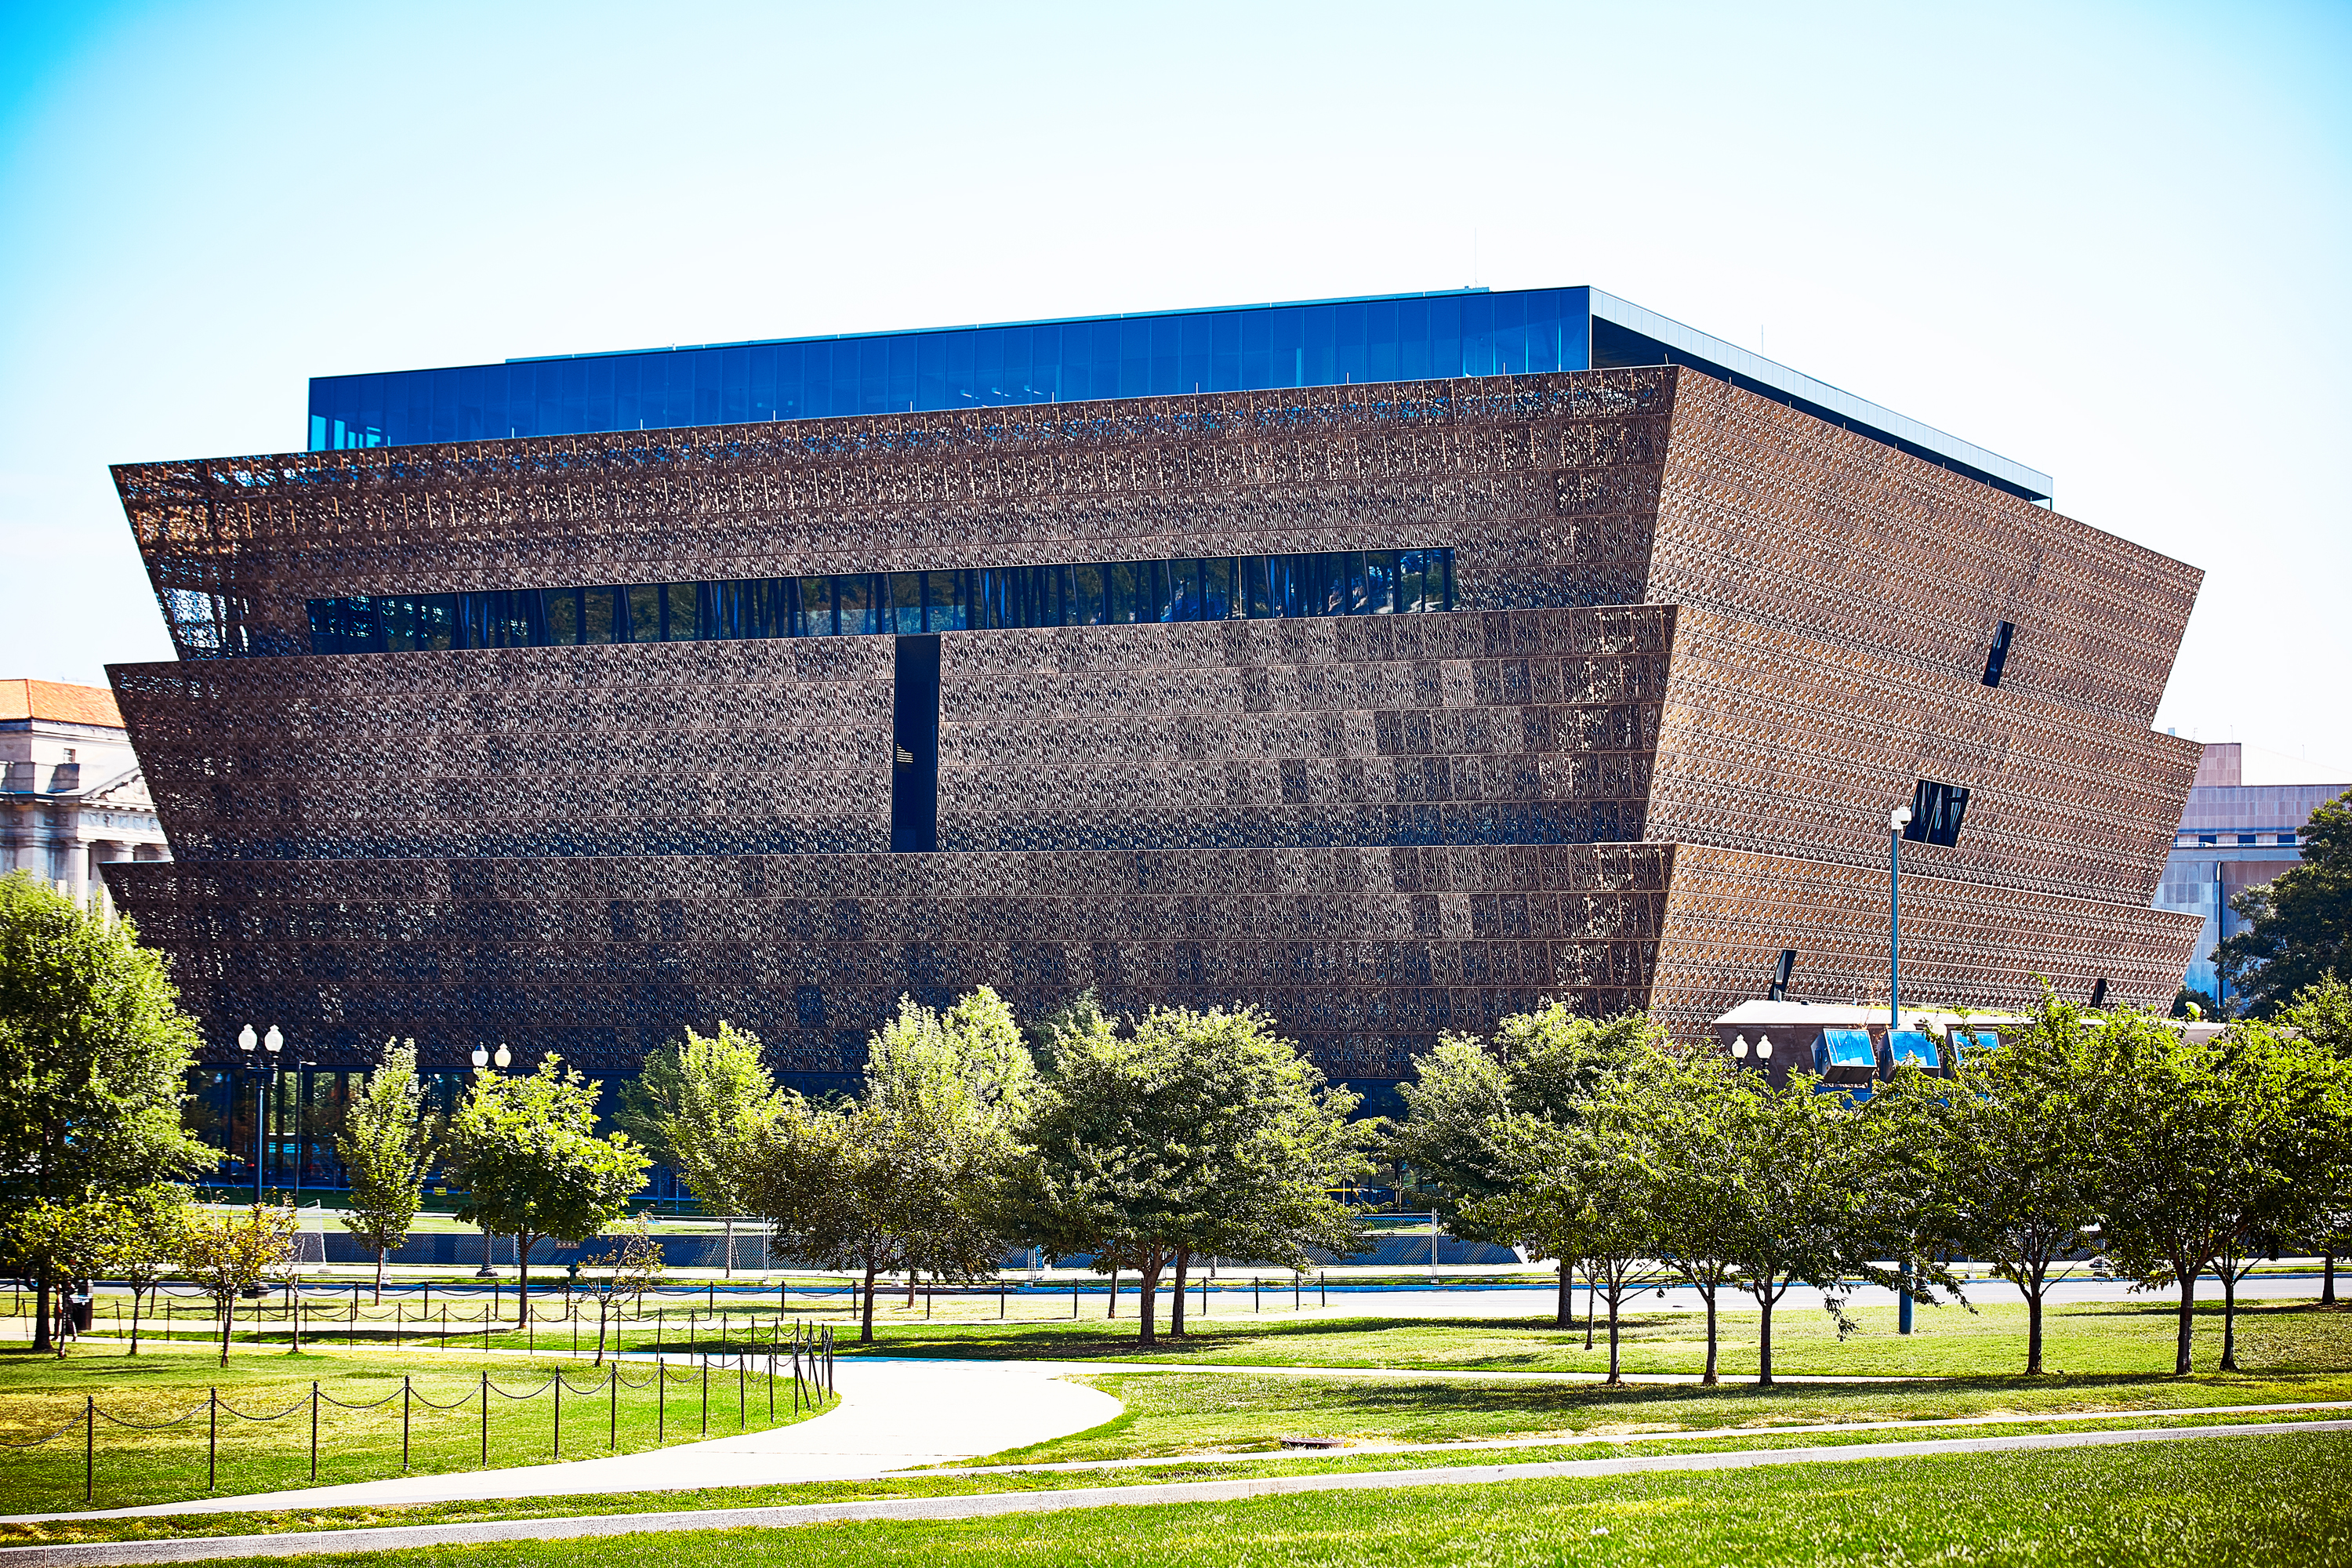 National Museum of African American History & Culture, Smithsonian Museum (Washington.org/PA)